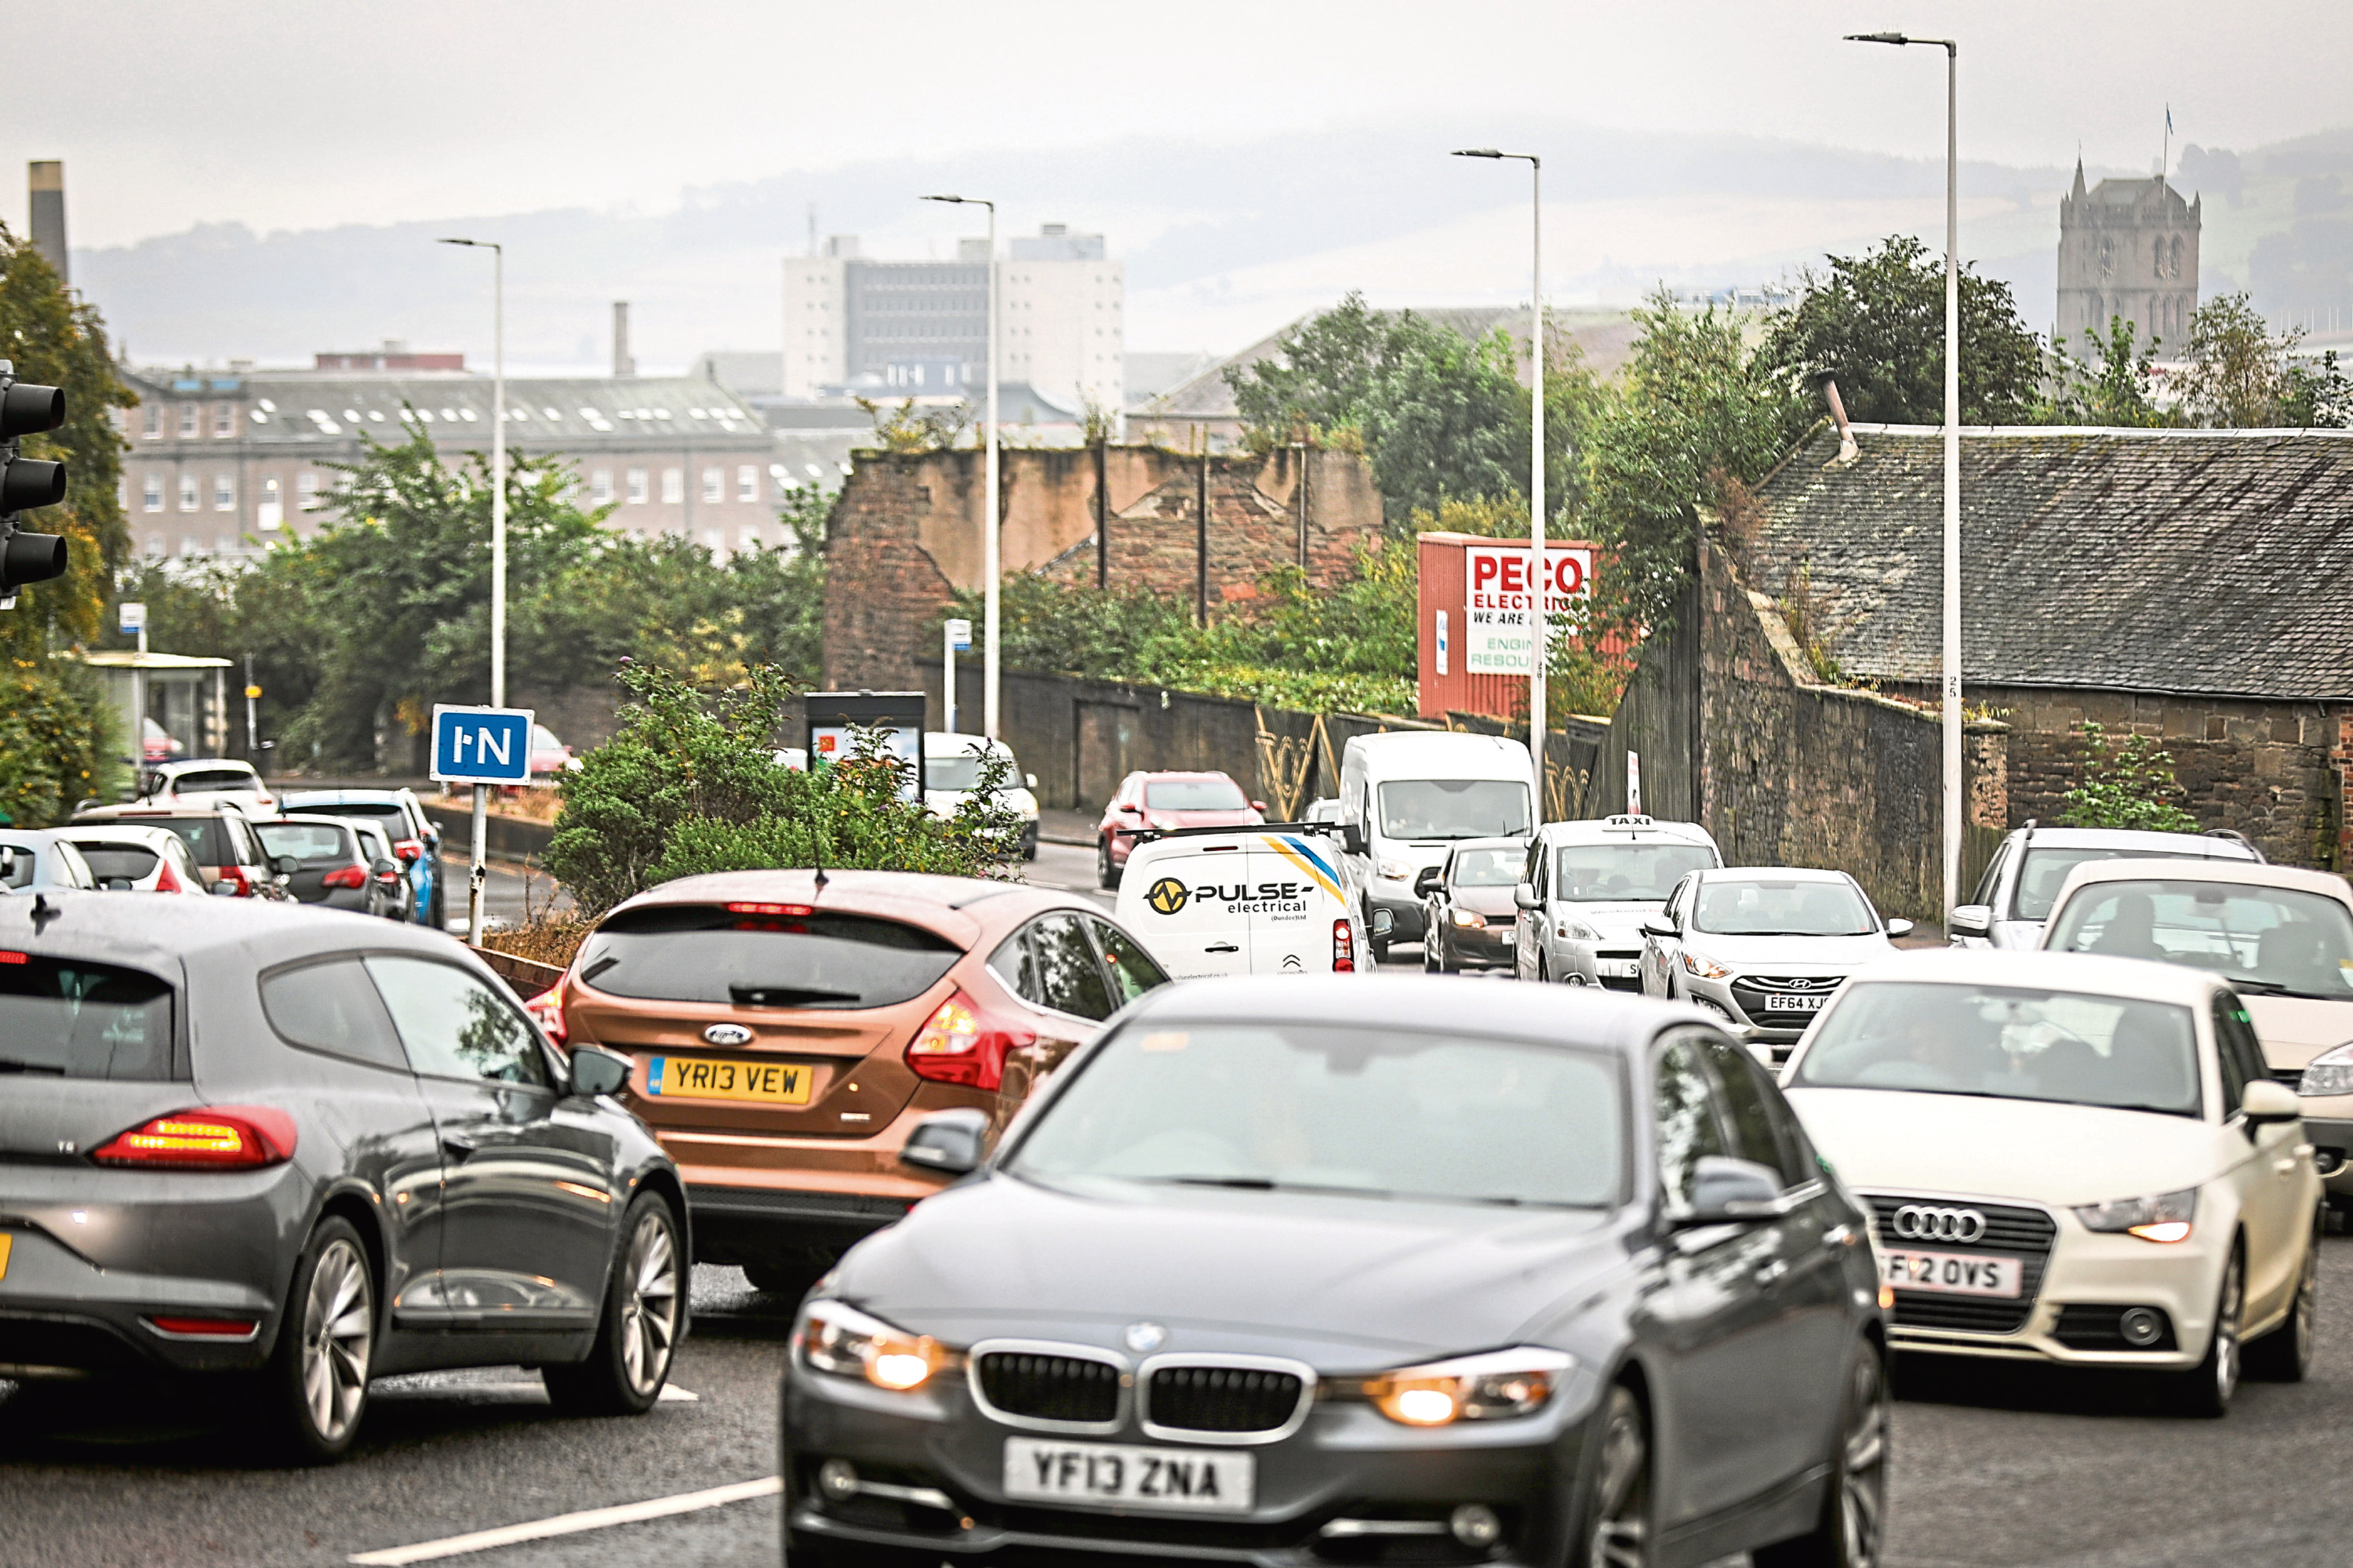 Lochee Road in Dundee is one of the city's busiest streets for traffic.